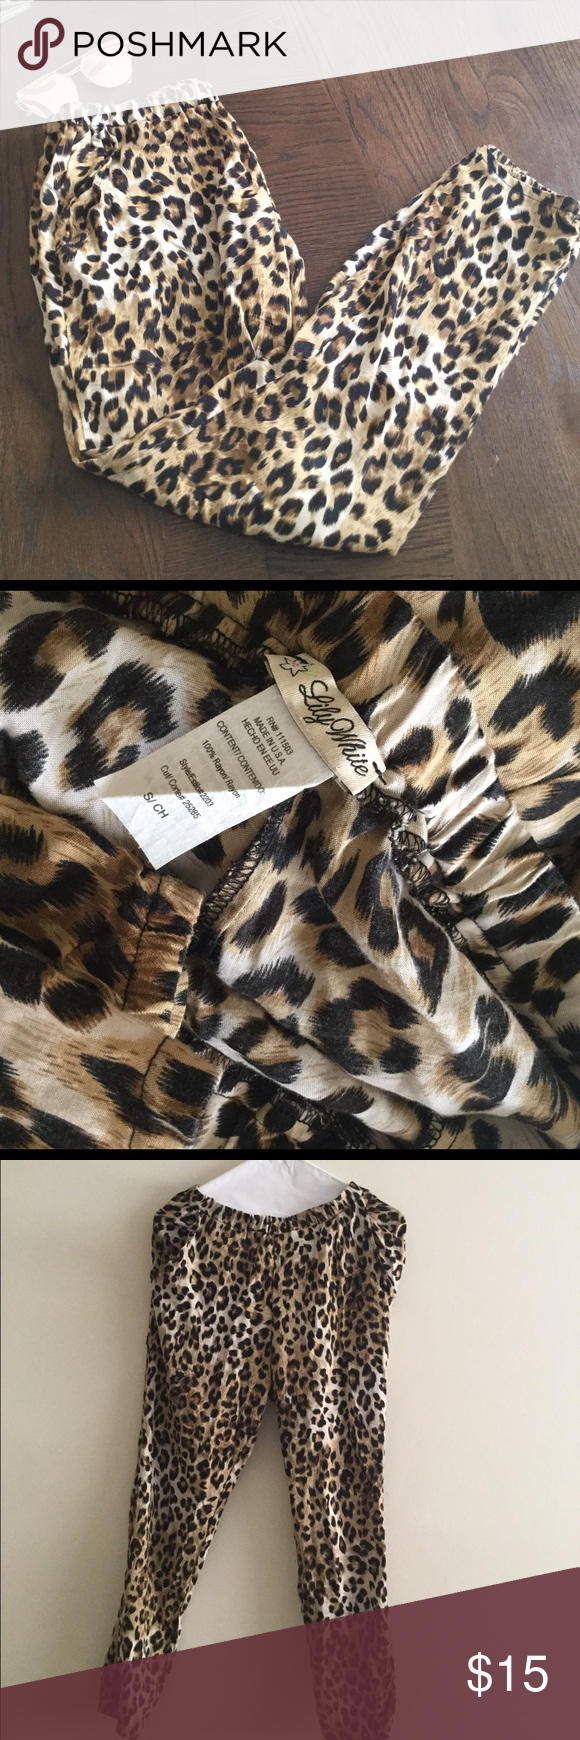 """Lily white Leopard pants Used twice,size S waist 28"""". Loose fit but fitted at bottom. Great color combination. Look great with flats or heels. No trading. Will take offers. Lily White Pants Trousers"""